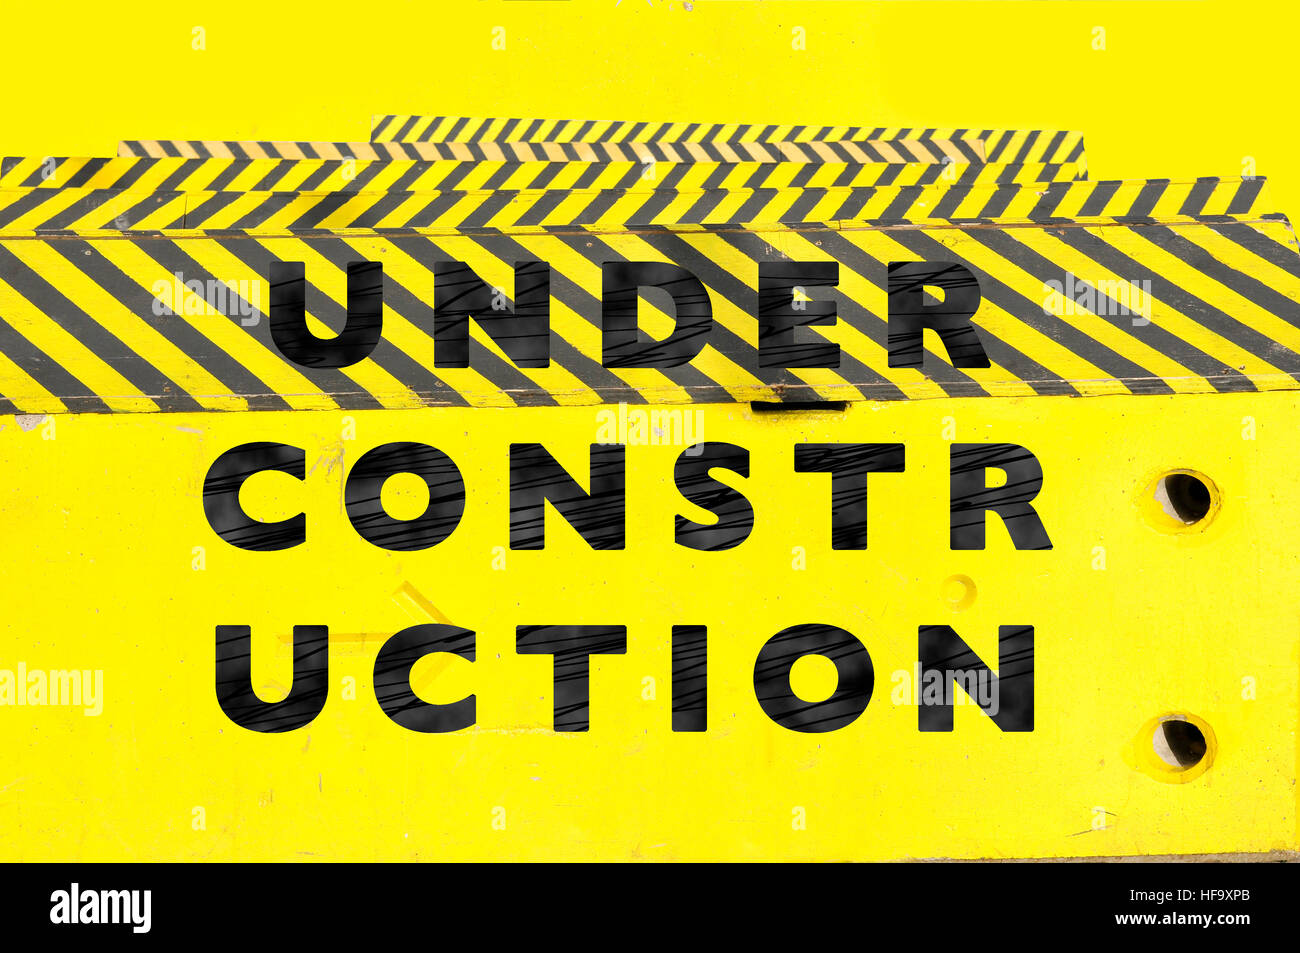 Under Construction Web Page Or Website Banner Stock Photo 129910995